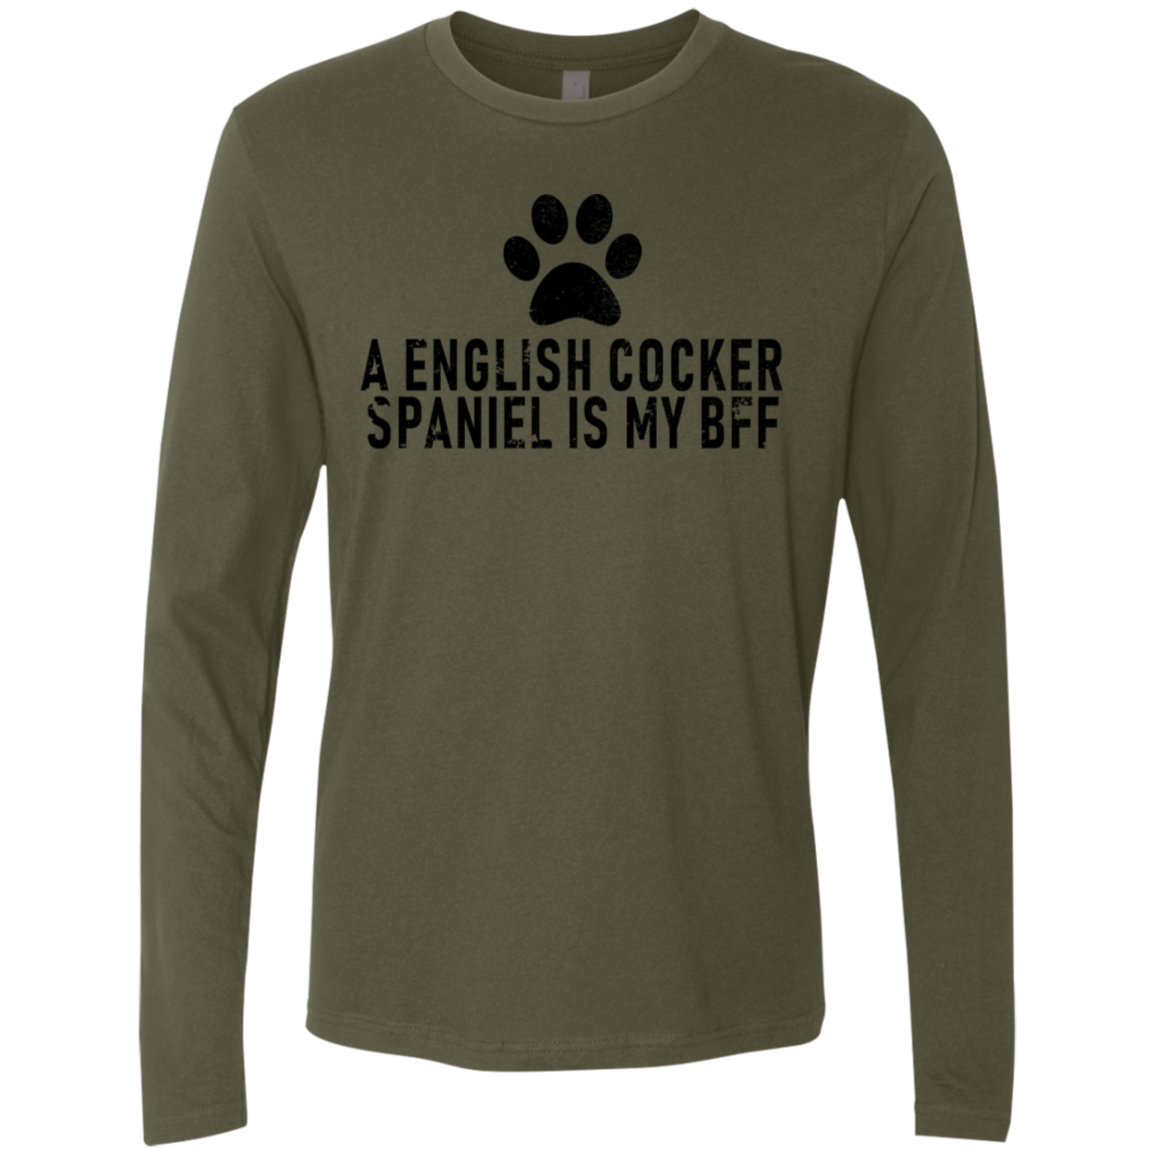 A English Cocker Spaniel Is My Bff Men's Long Sleeve Tee